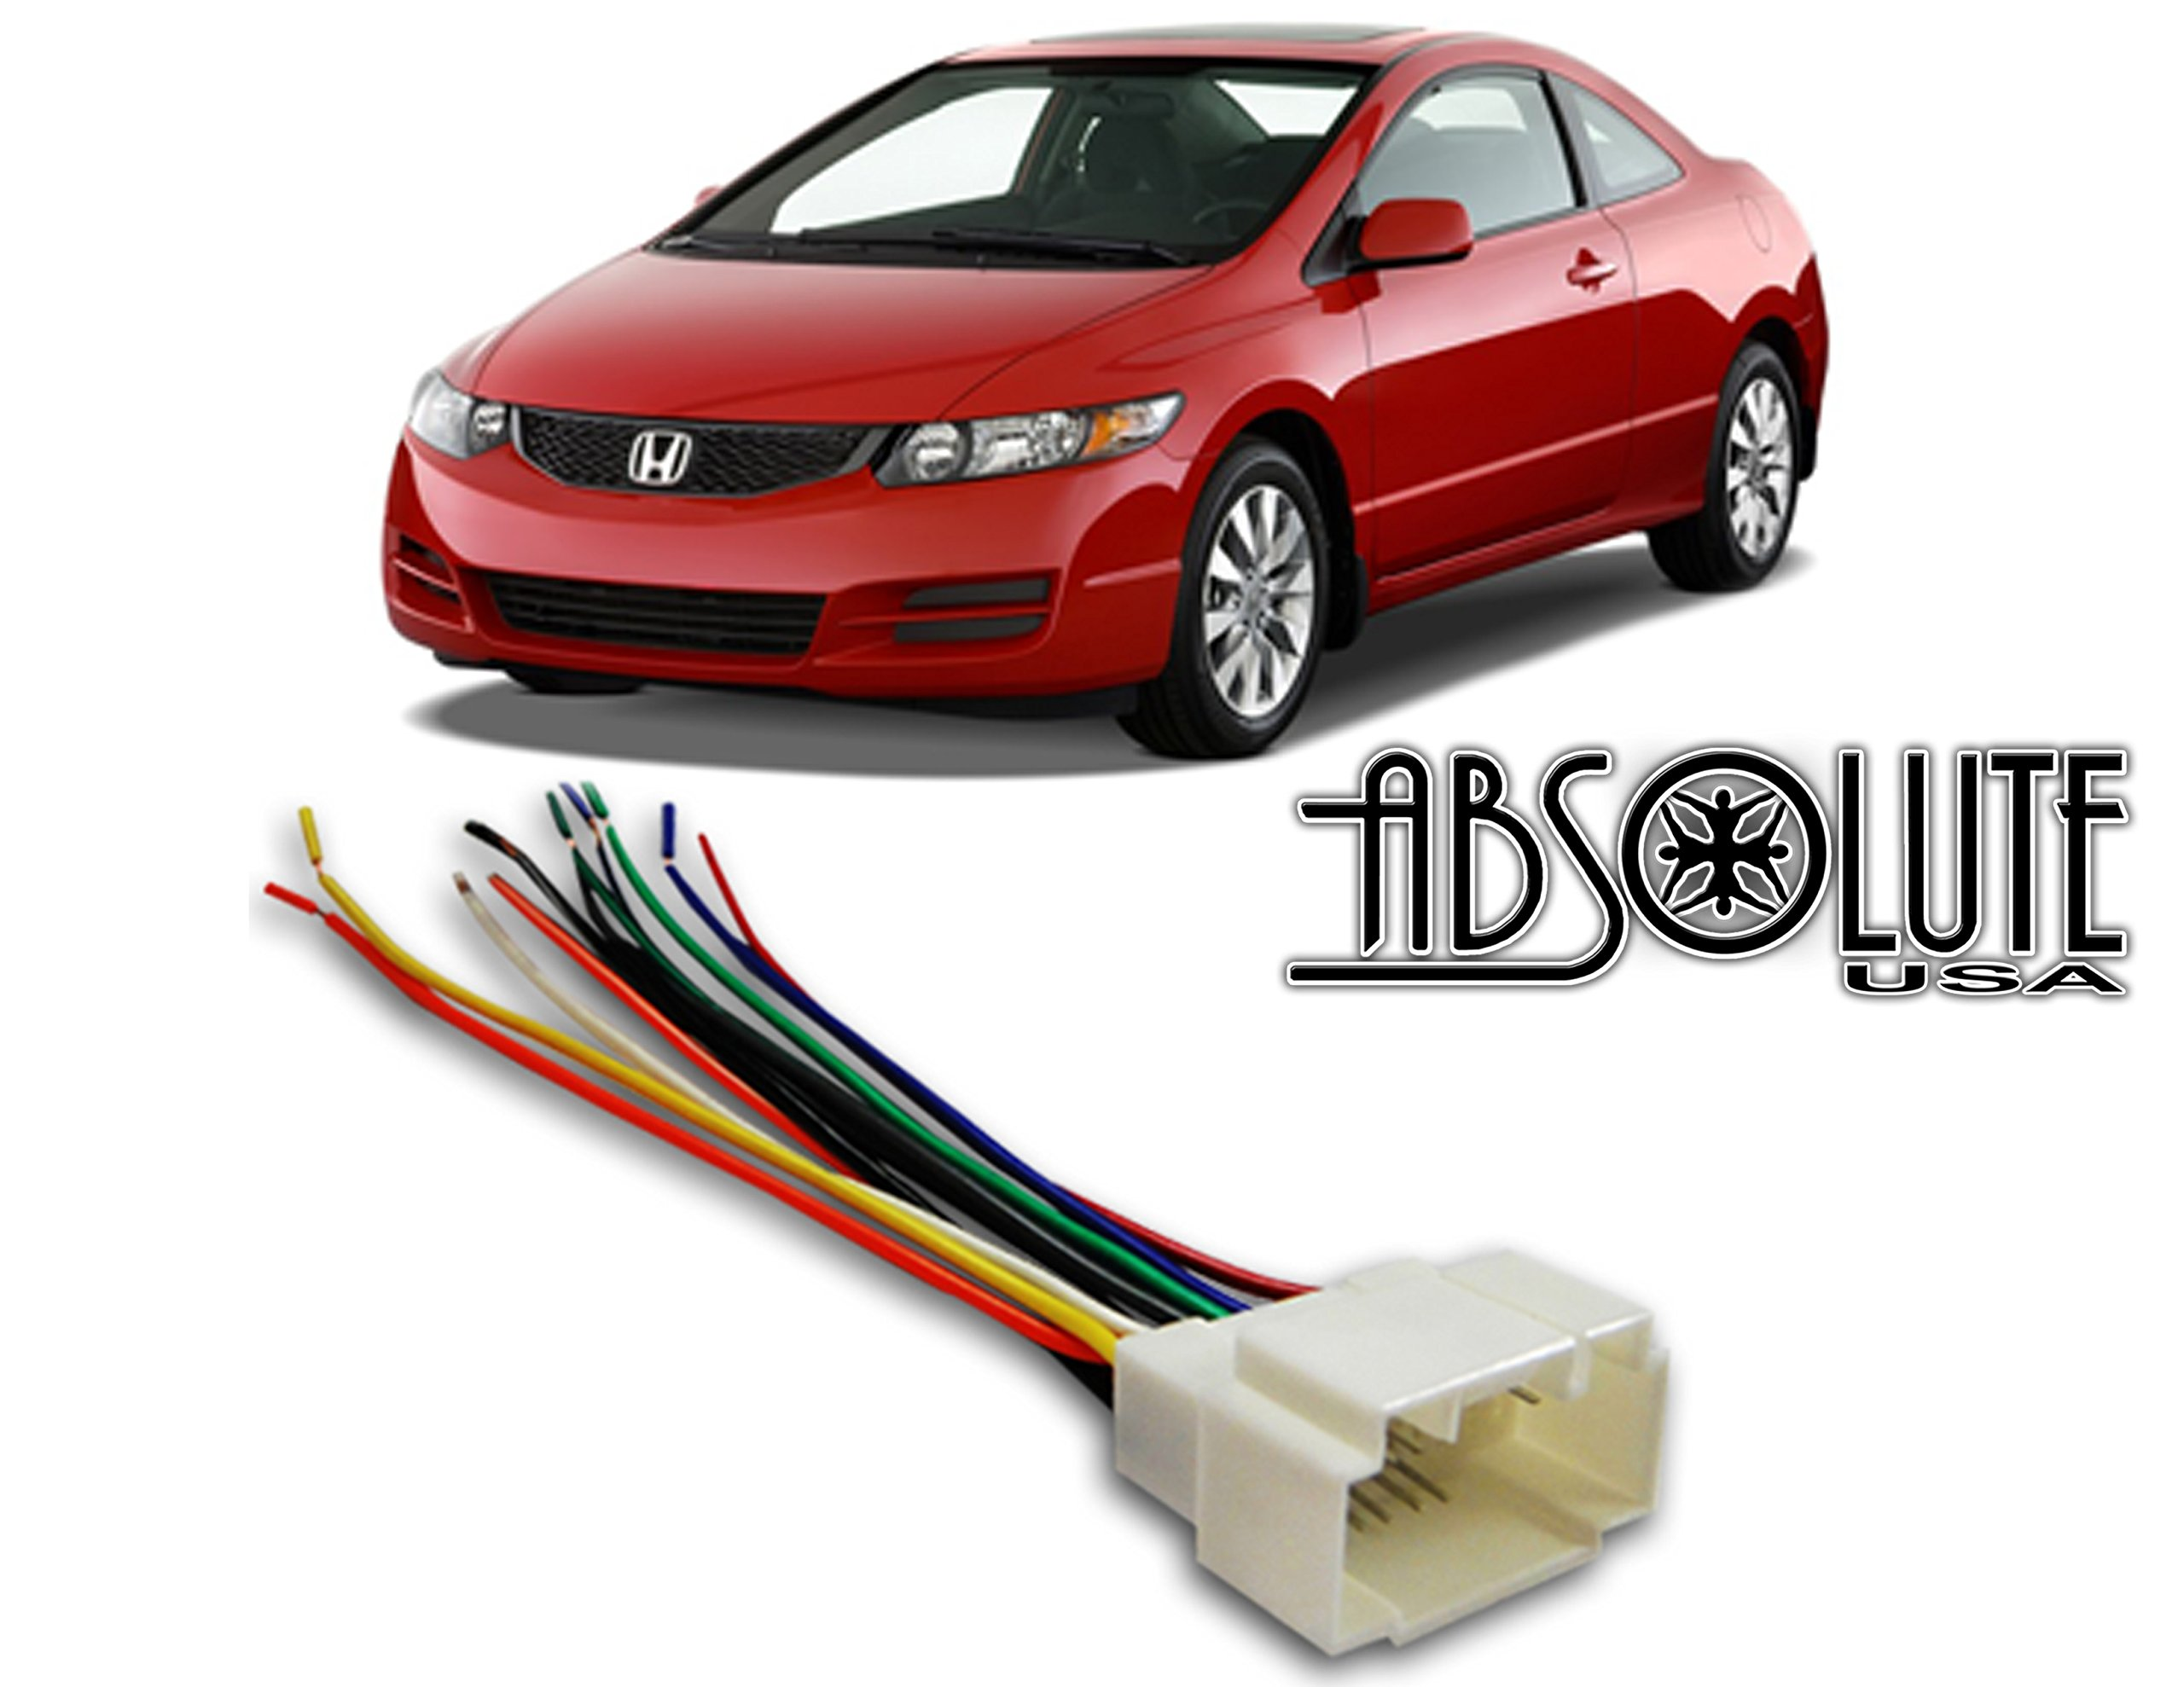 Cheap 4 Wire Harness Find Deals On Line At Alibabacom Ford 1210 Wiring Get Quotations Stereo Honda Civic 01 02 03 04 2004 Aftermarket Radio Installation